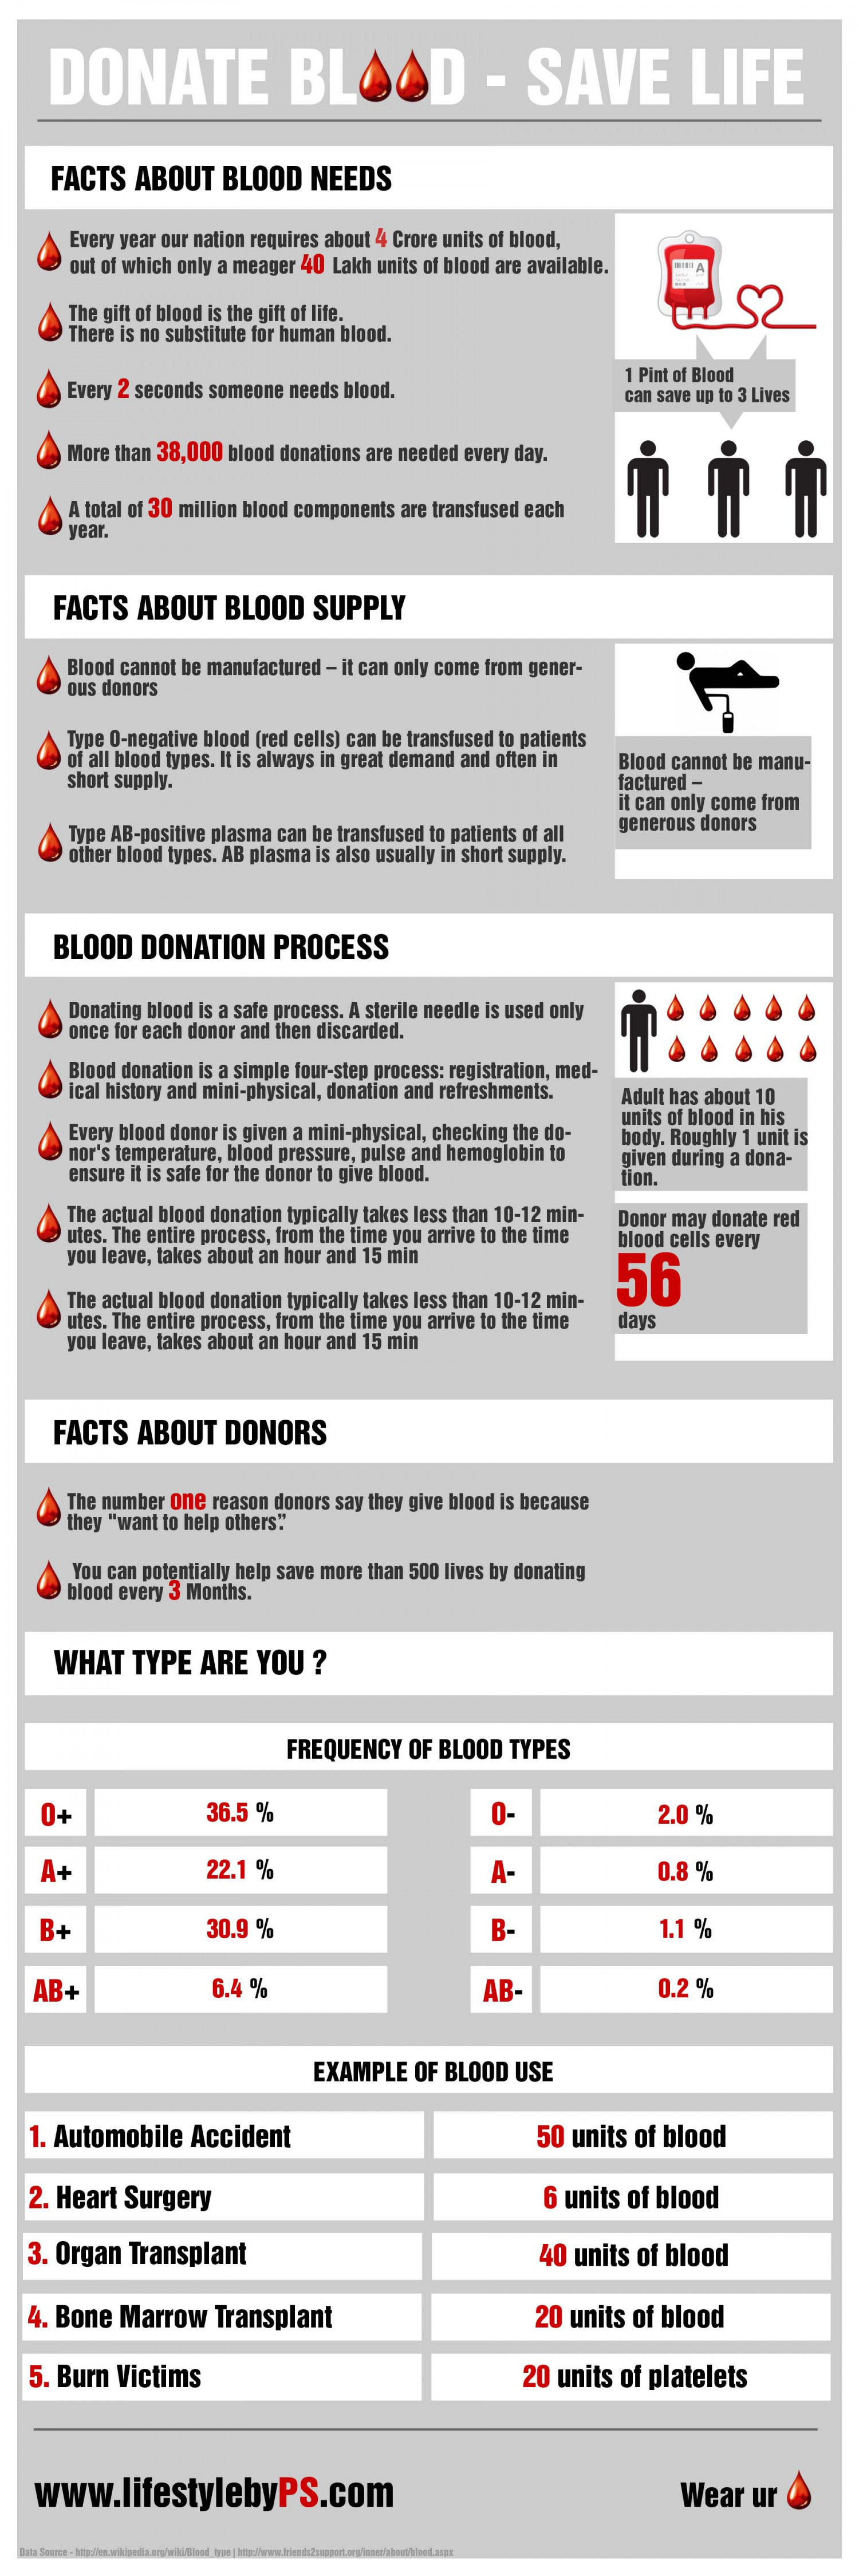 DONATE BLOOD - SAVE LIFE Infographic